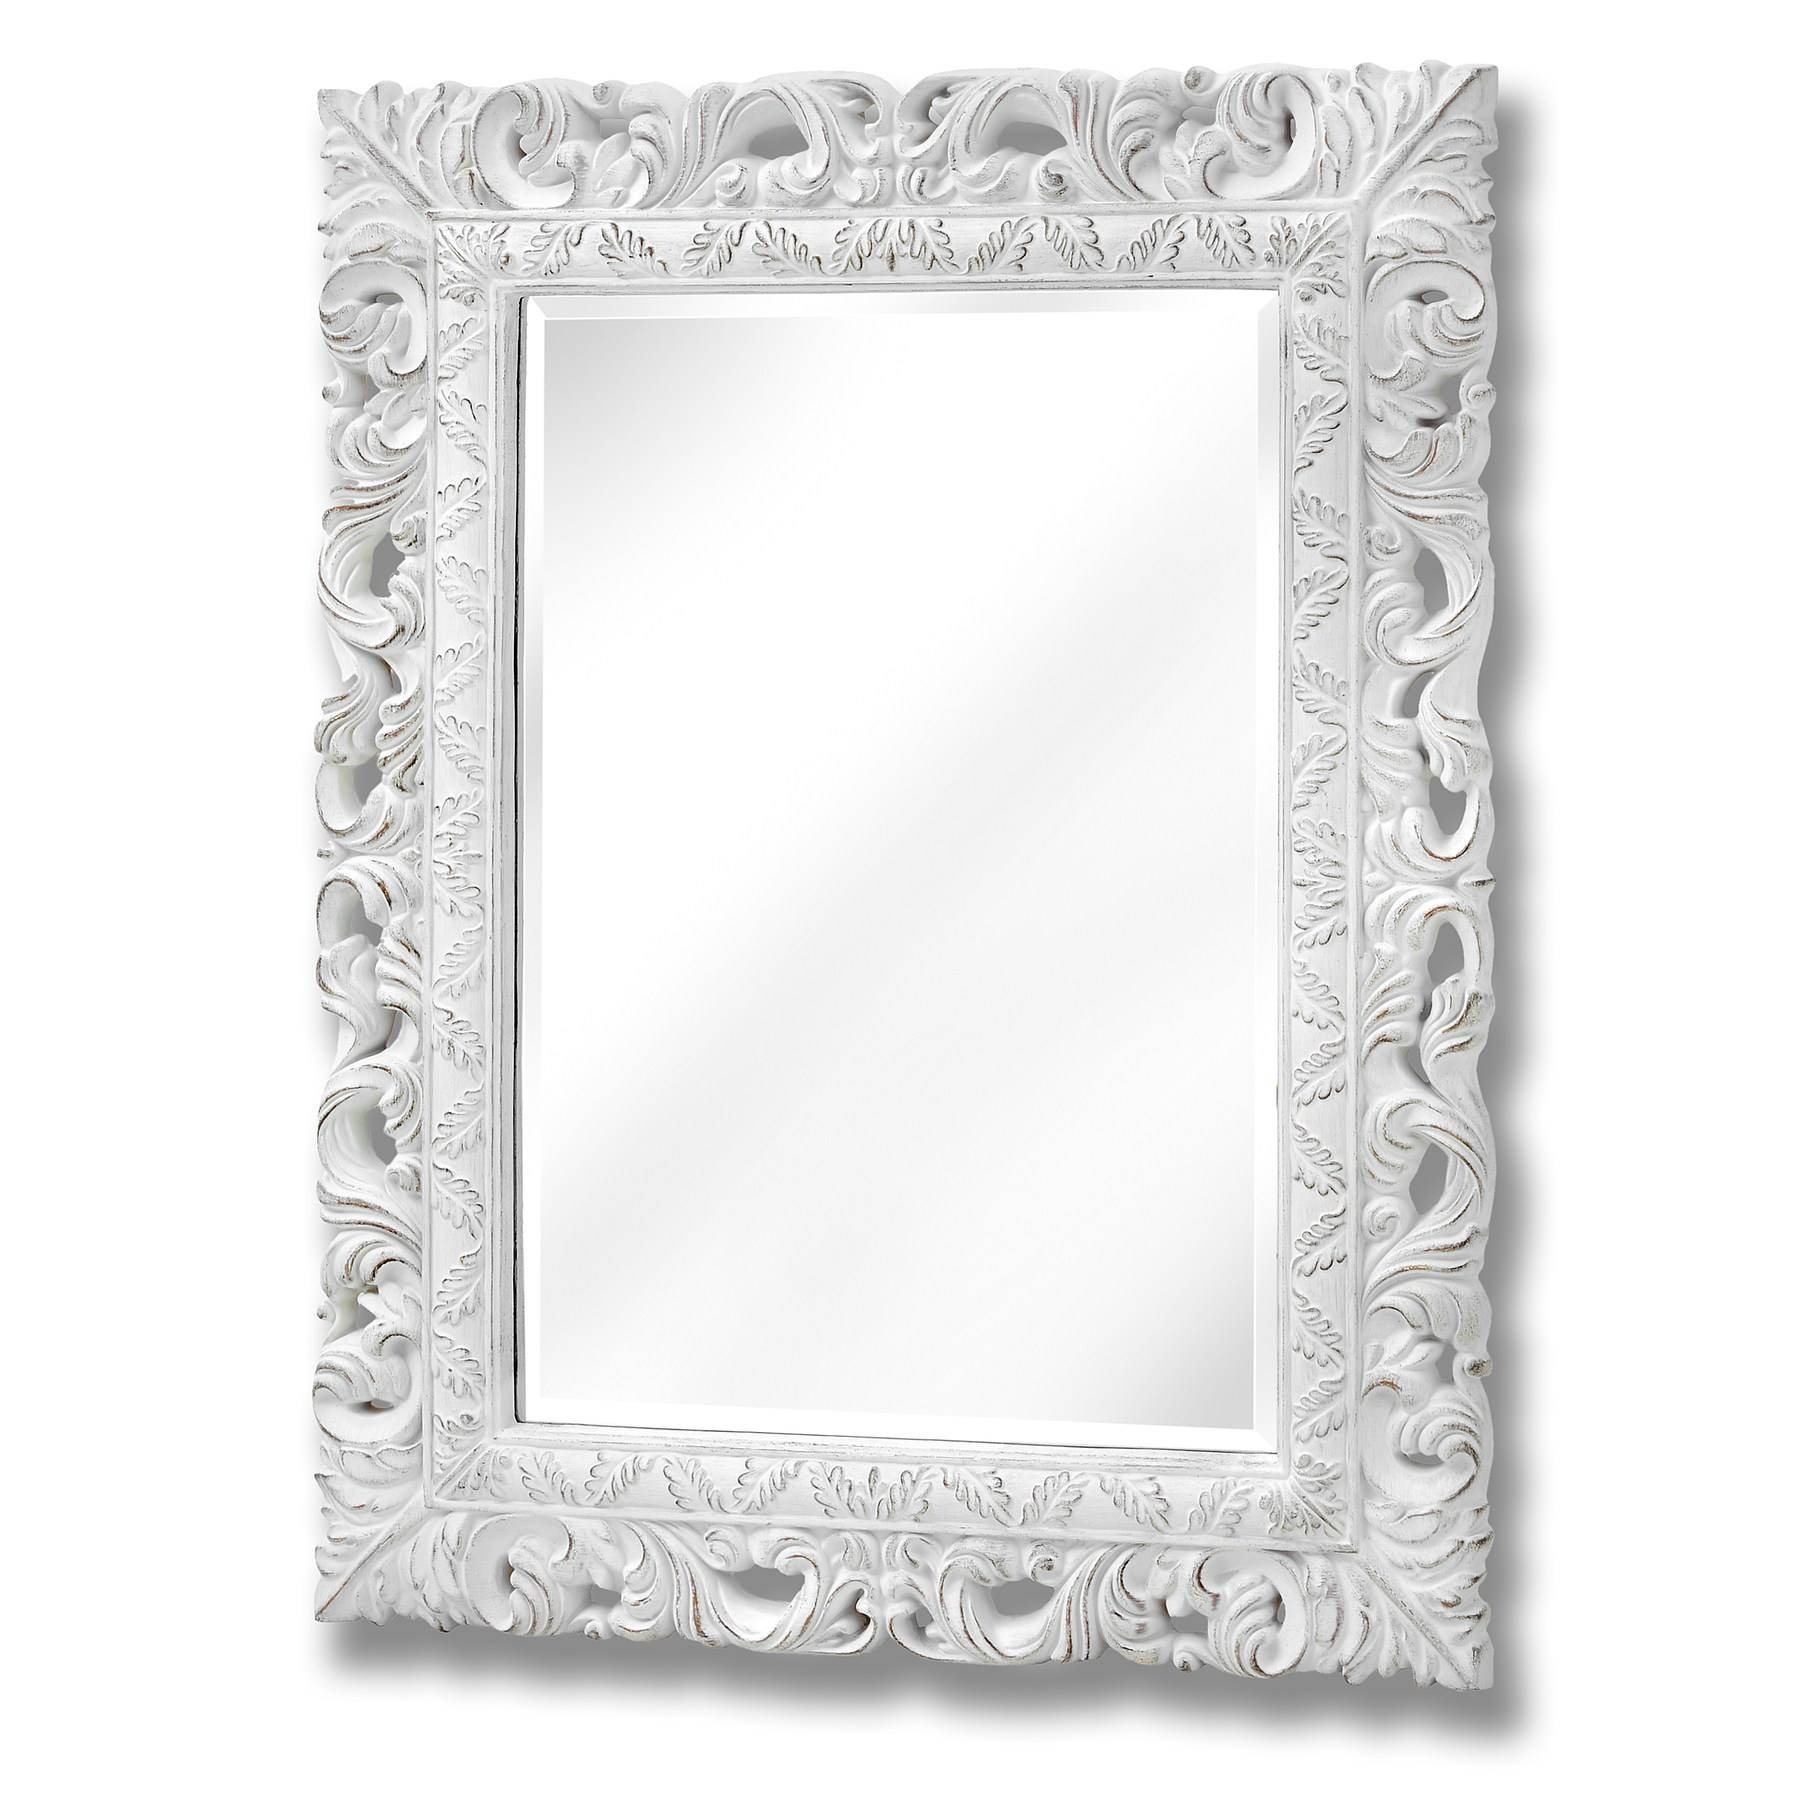 Antique White Ornate Leaf Wall Mirror | From Baytree Interiors Within Antique Ornate Mirrors (View 14 of 25)